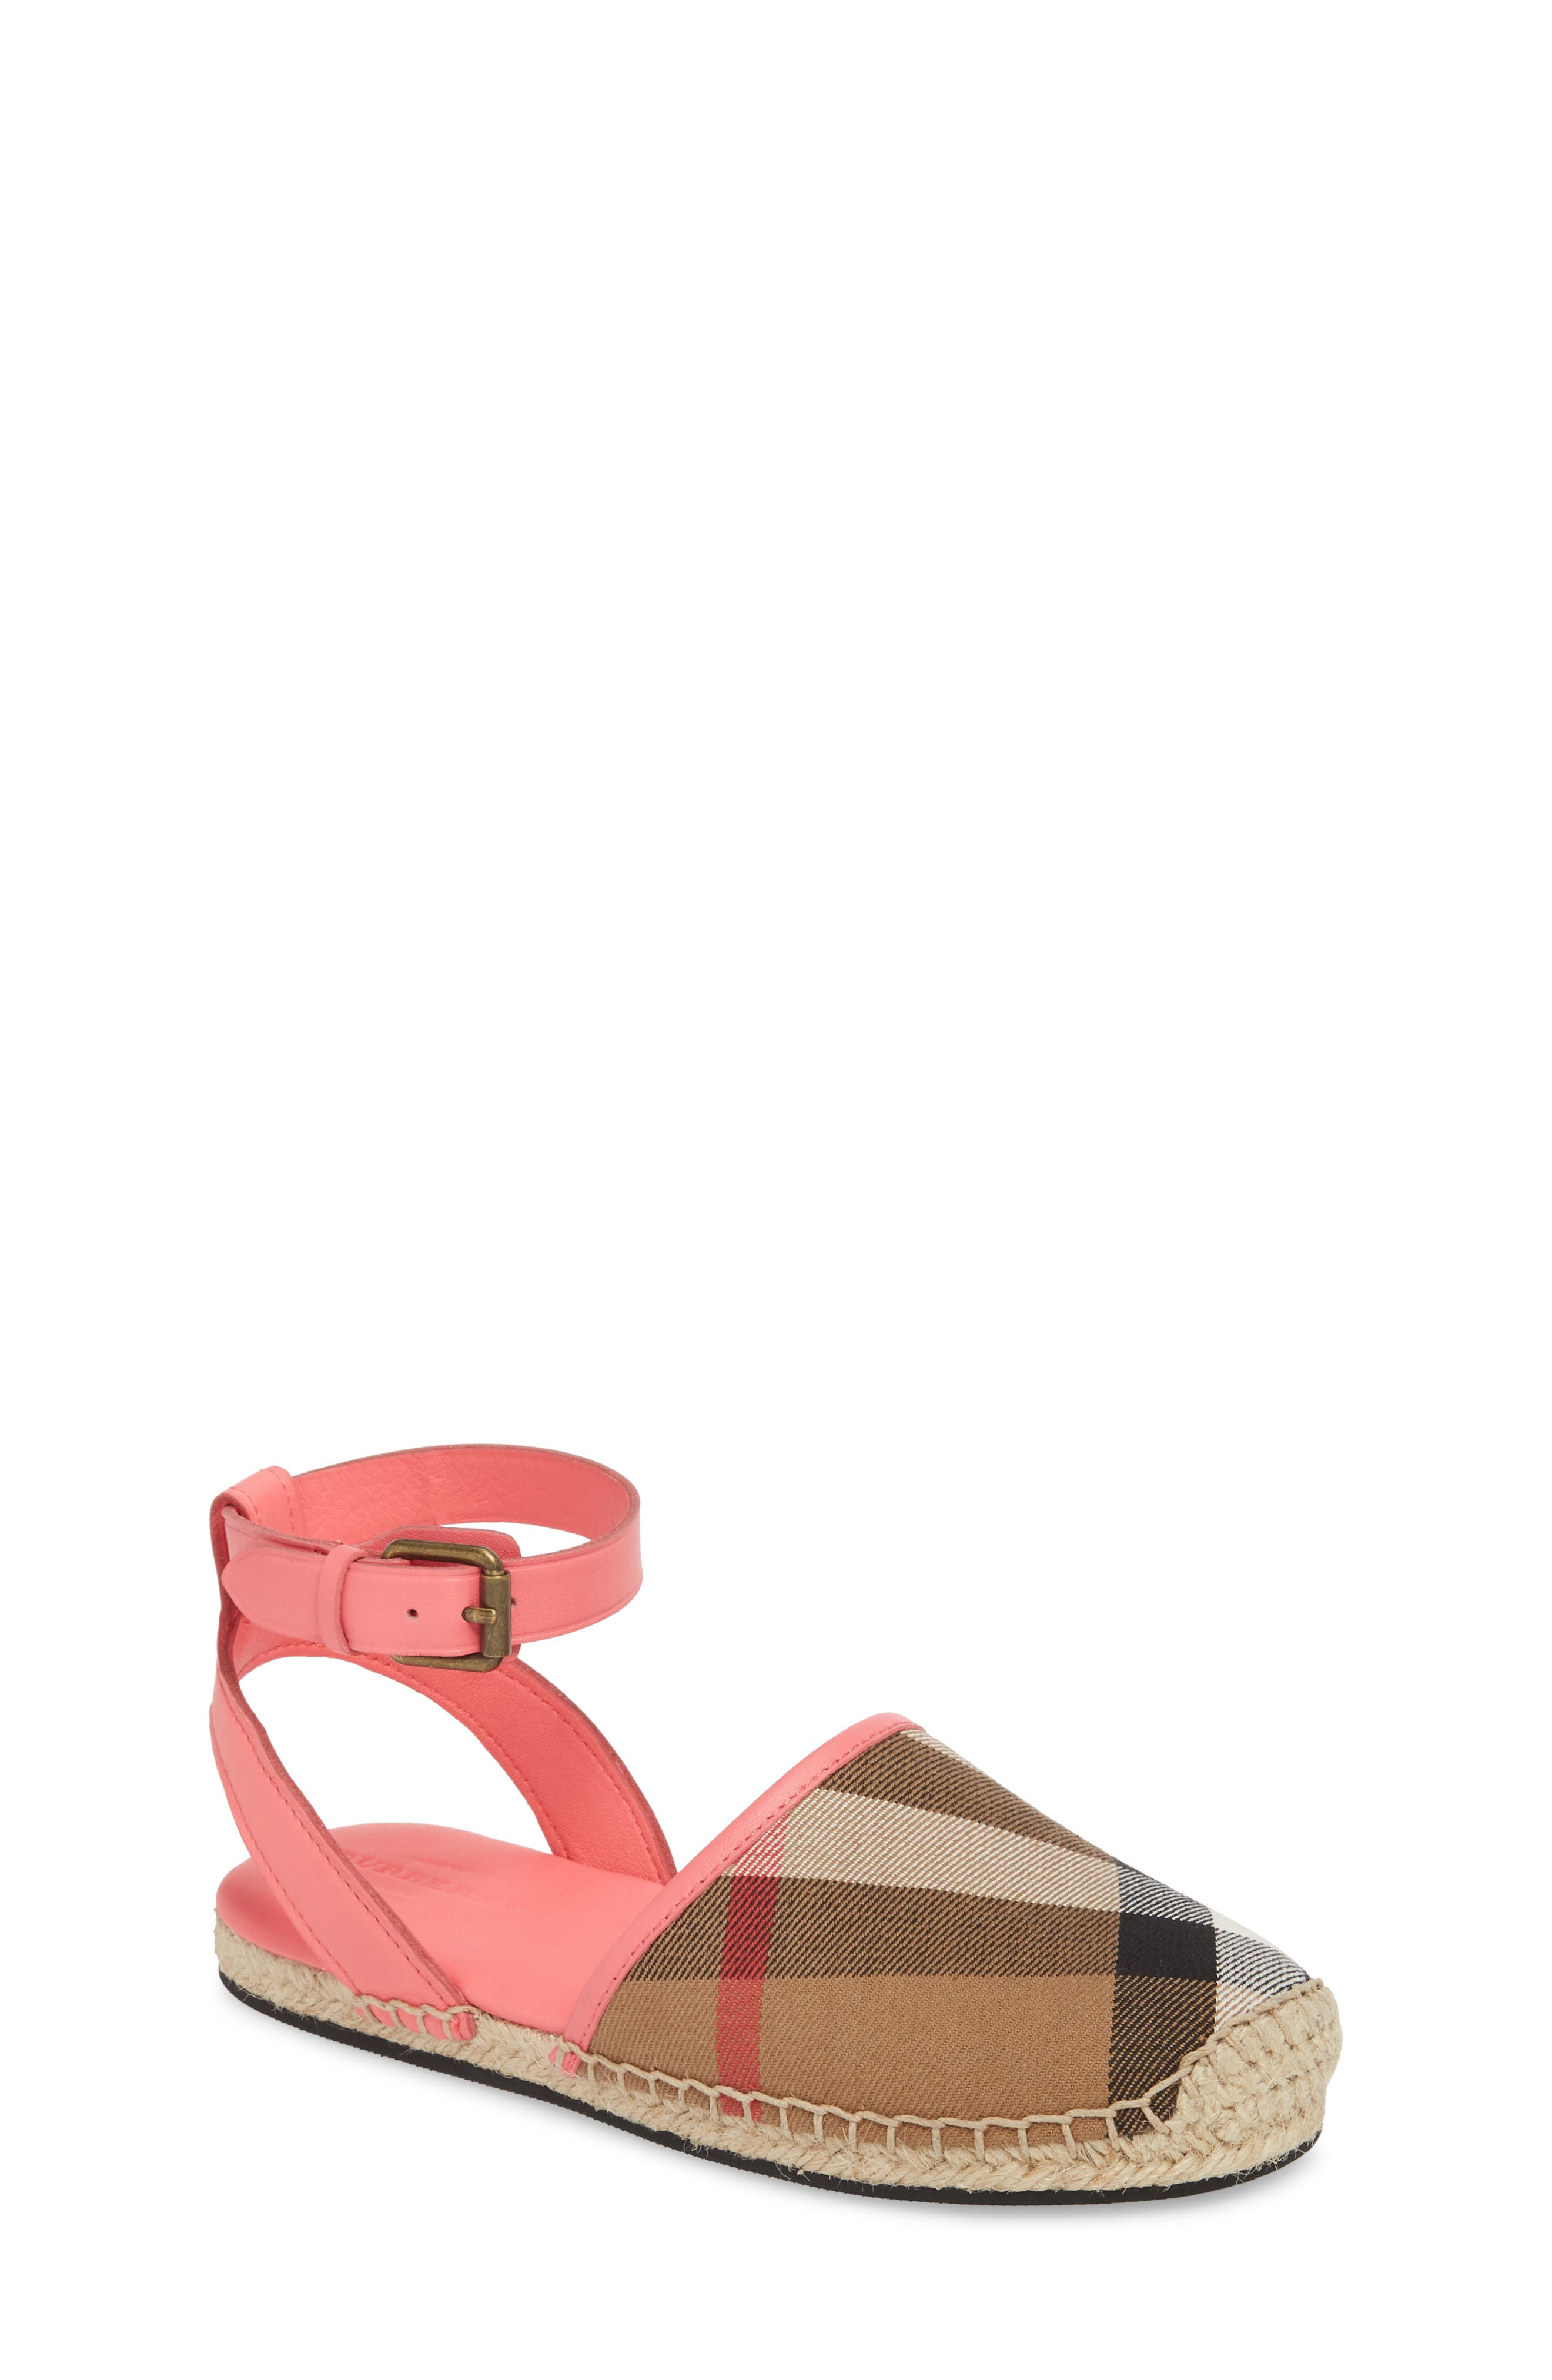 New Perth Espadrille Sandal,                         Main,                         color, 676